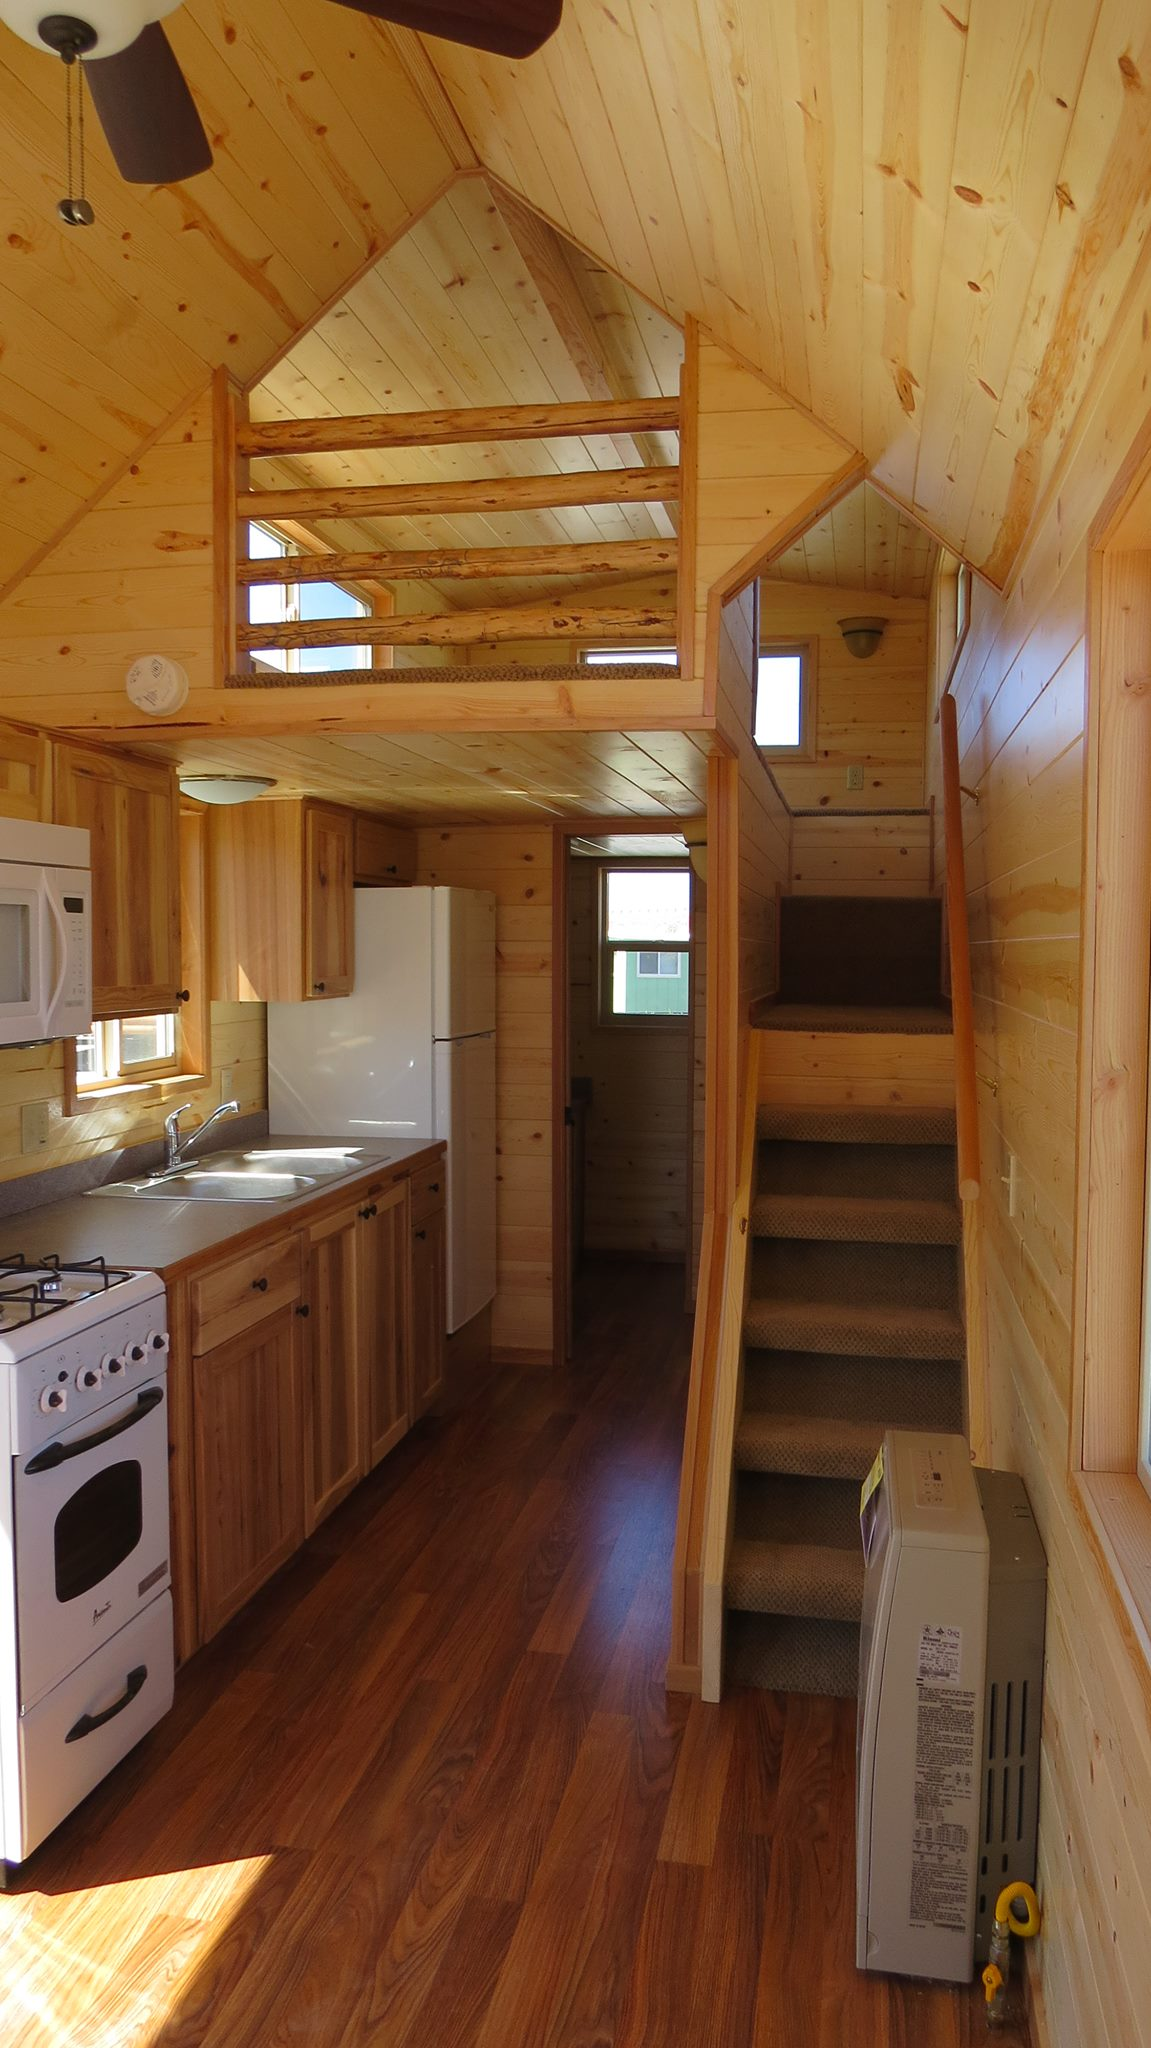 spacious-tiny-house-on-wheels-by-richs-portable-cabins-002